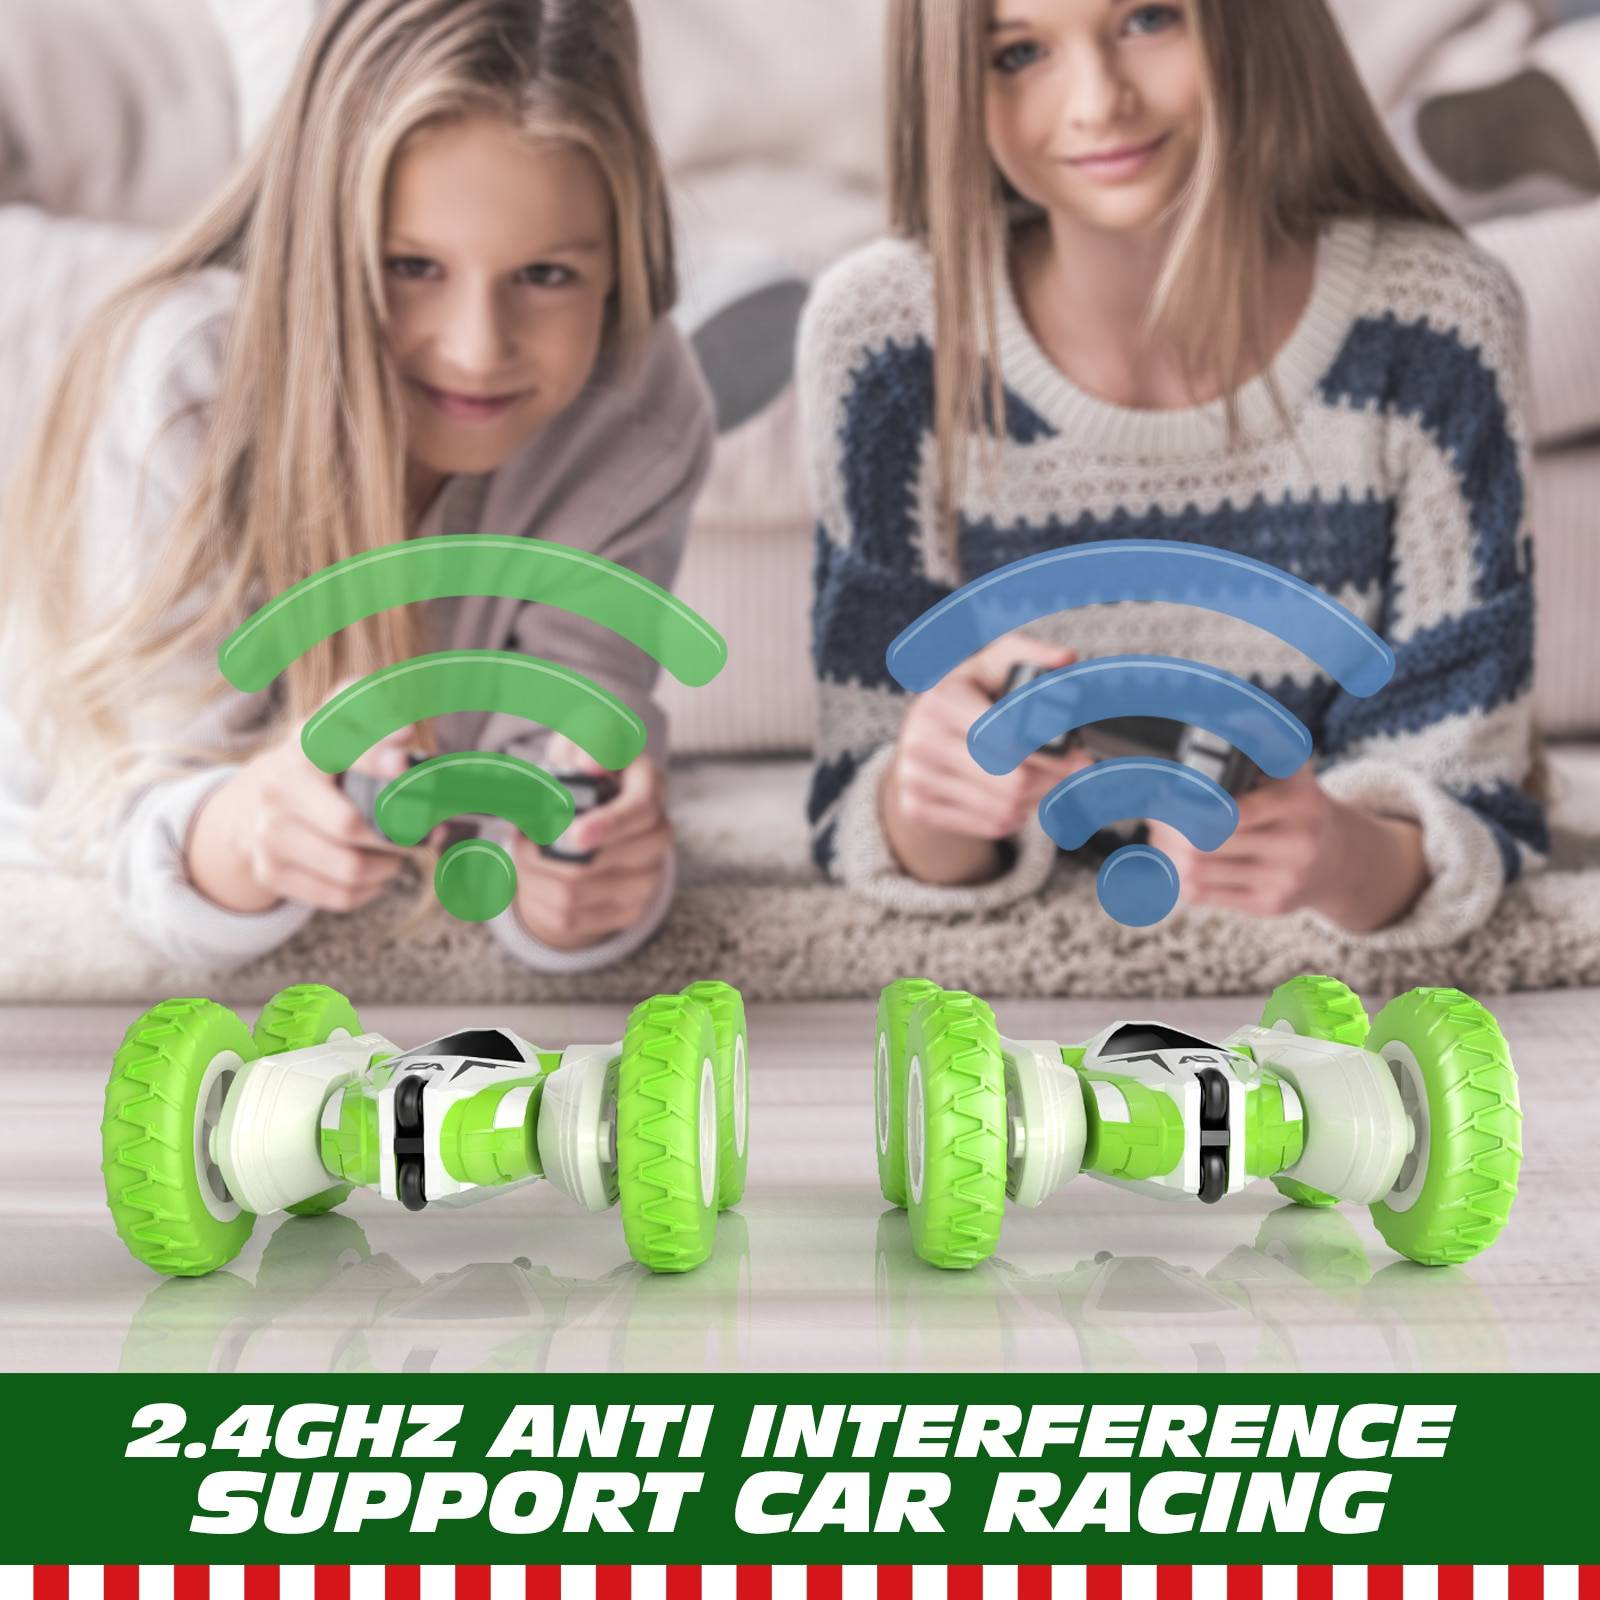 4CH 2.4G Remote Control Support Car Racing GYOBY® TOYS